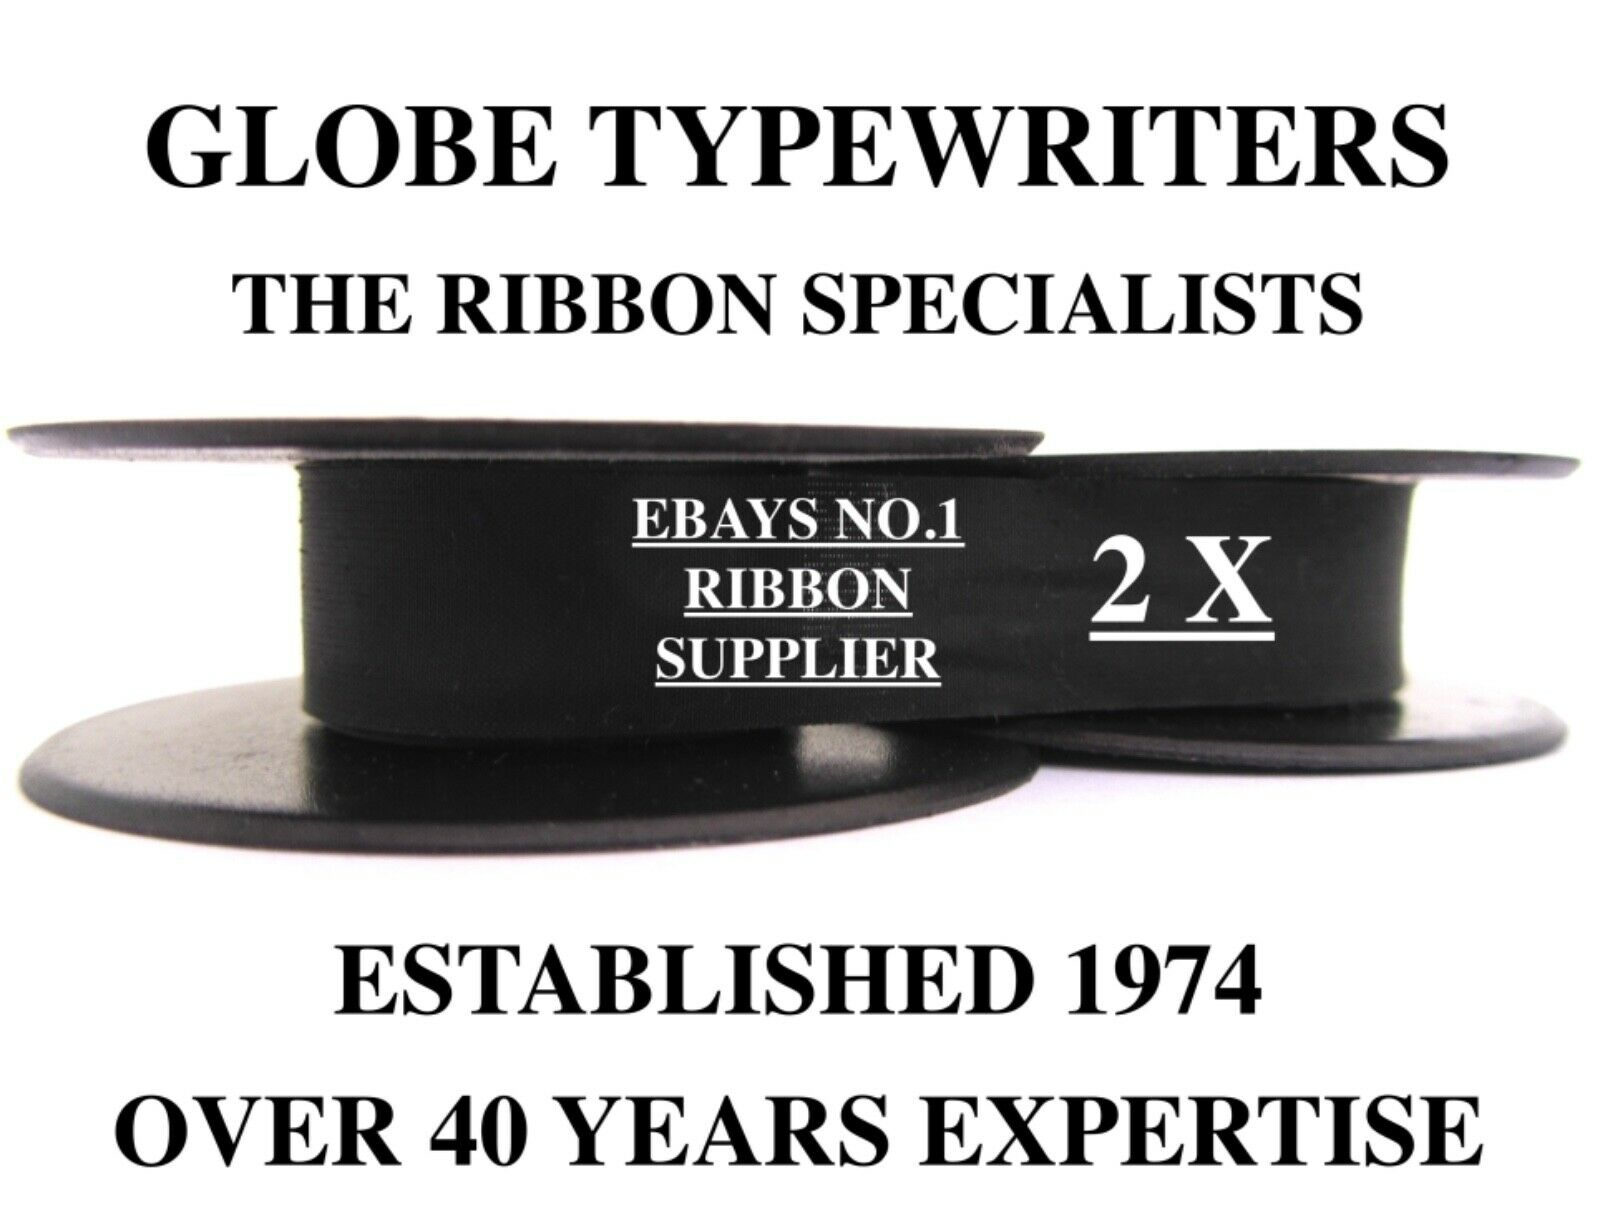 2 x 'OLYMPIA MONICA' *BLACK* TOP QUALITY *10M* TYPEWRITER RIBBONS *TWIN SPOOL*